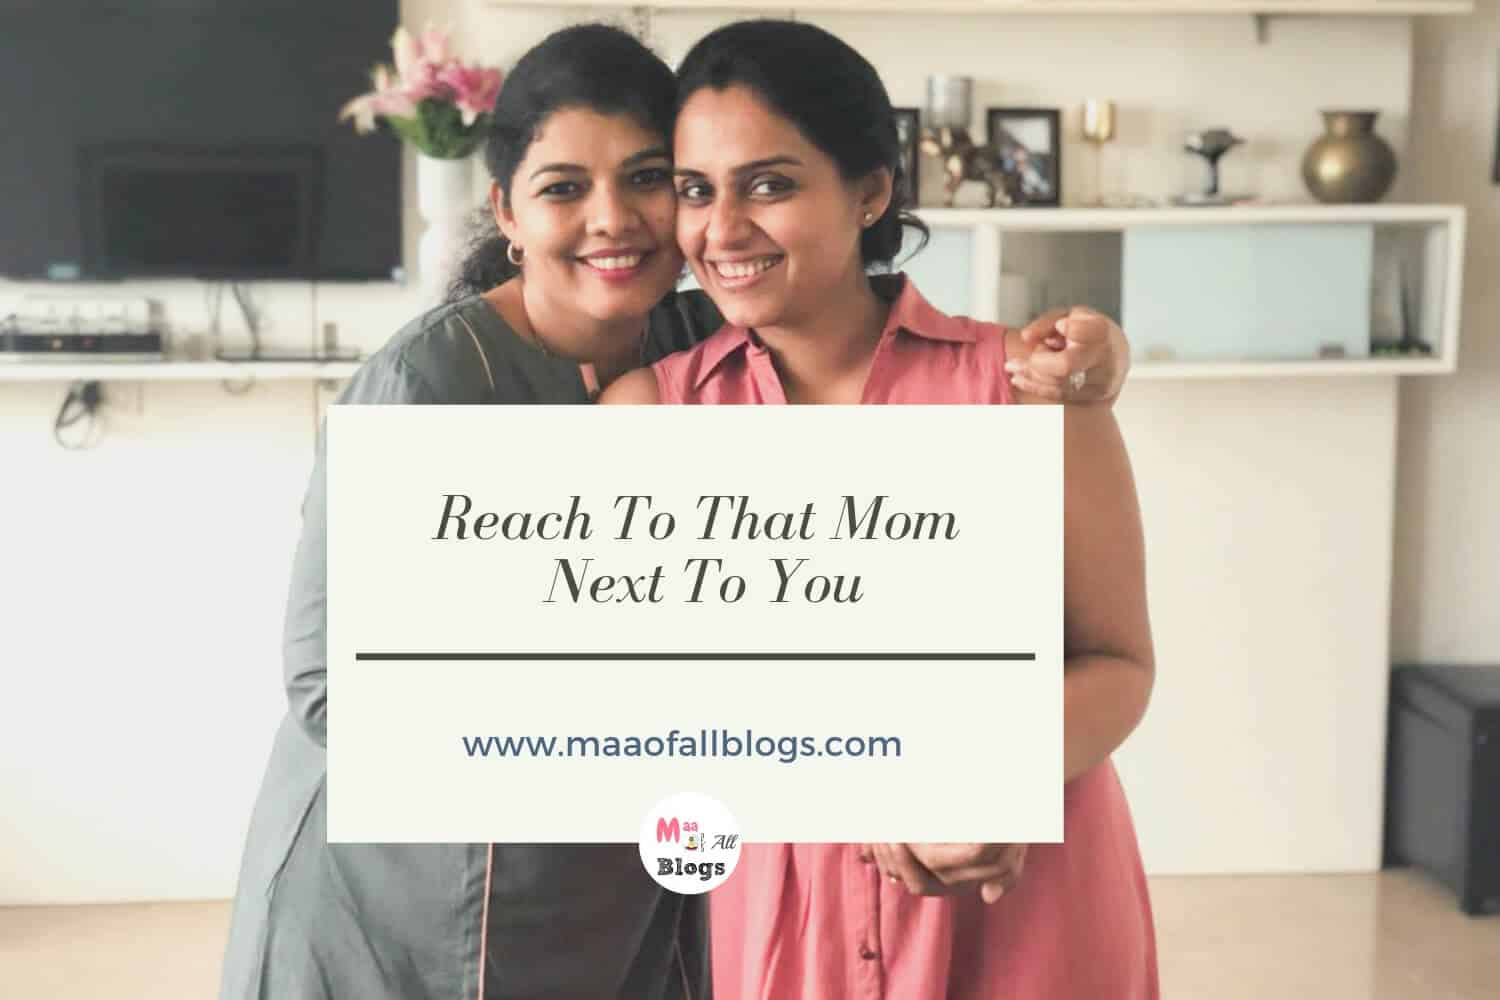 Things You Should Never Say To A Mom